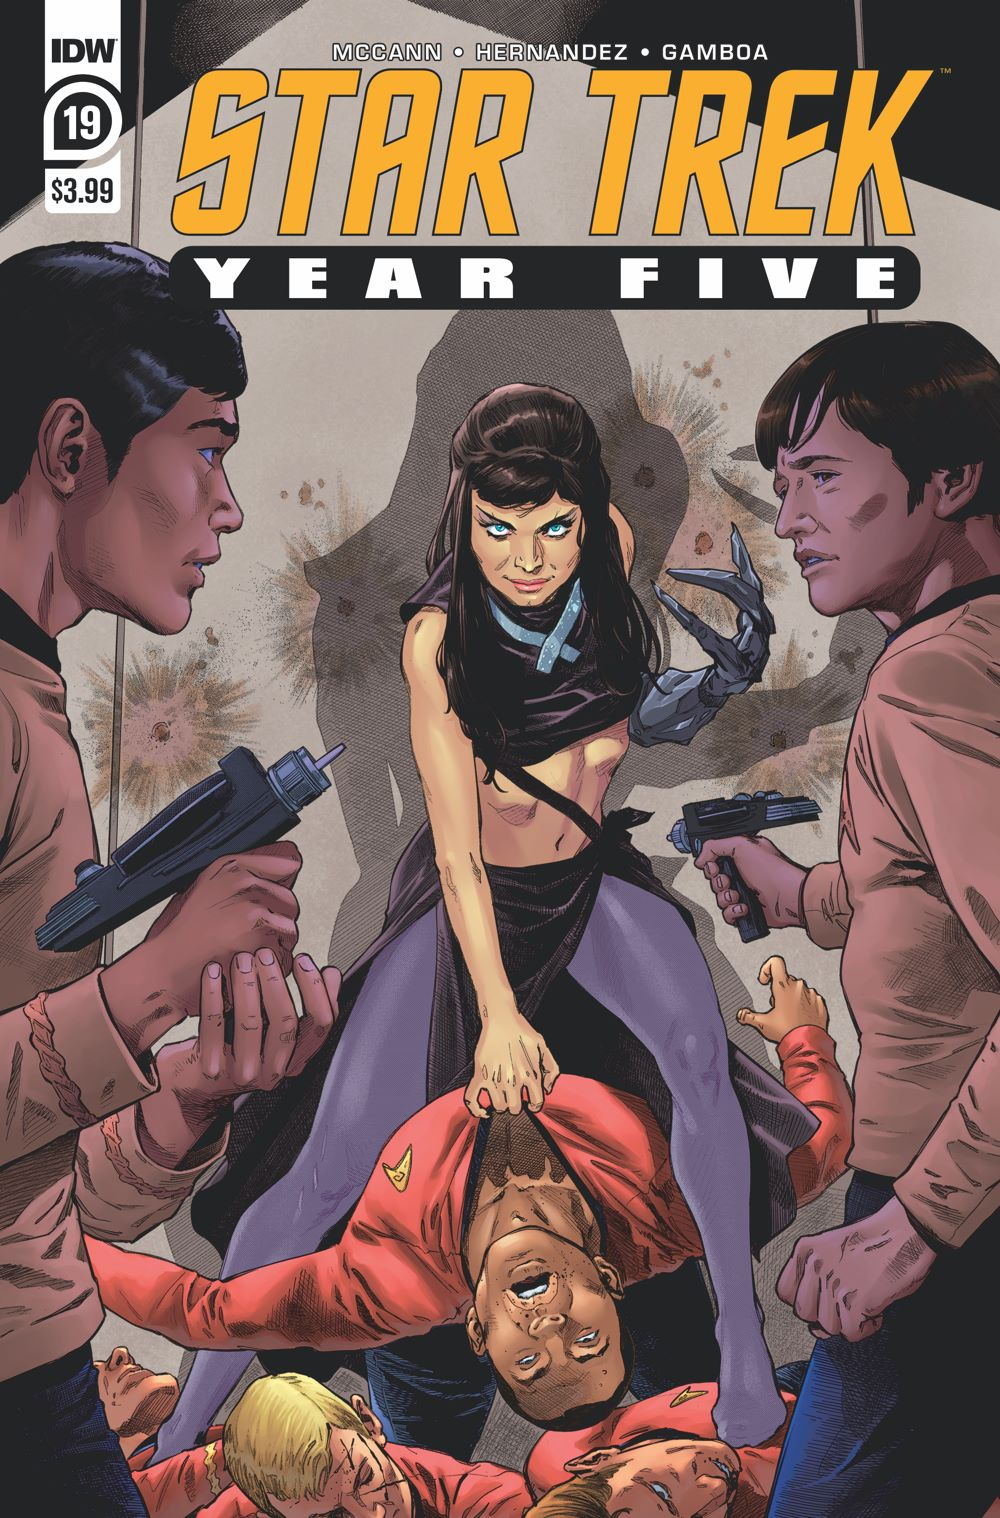 ST_YearFive19-cover ComicList Previews: STAR TREK YEAR FIVE #19